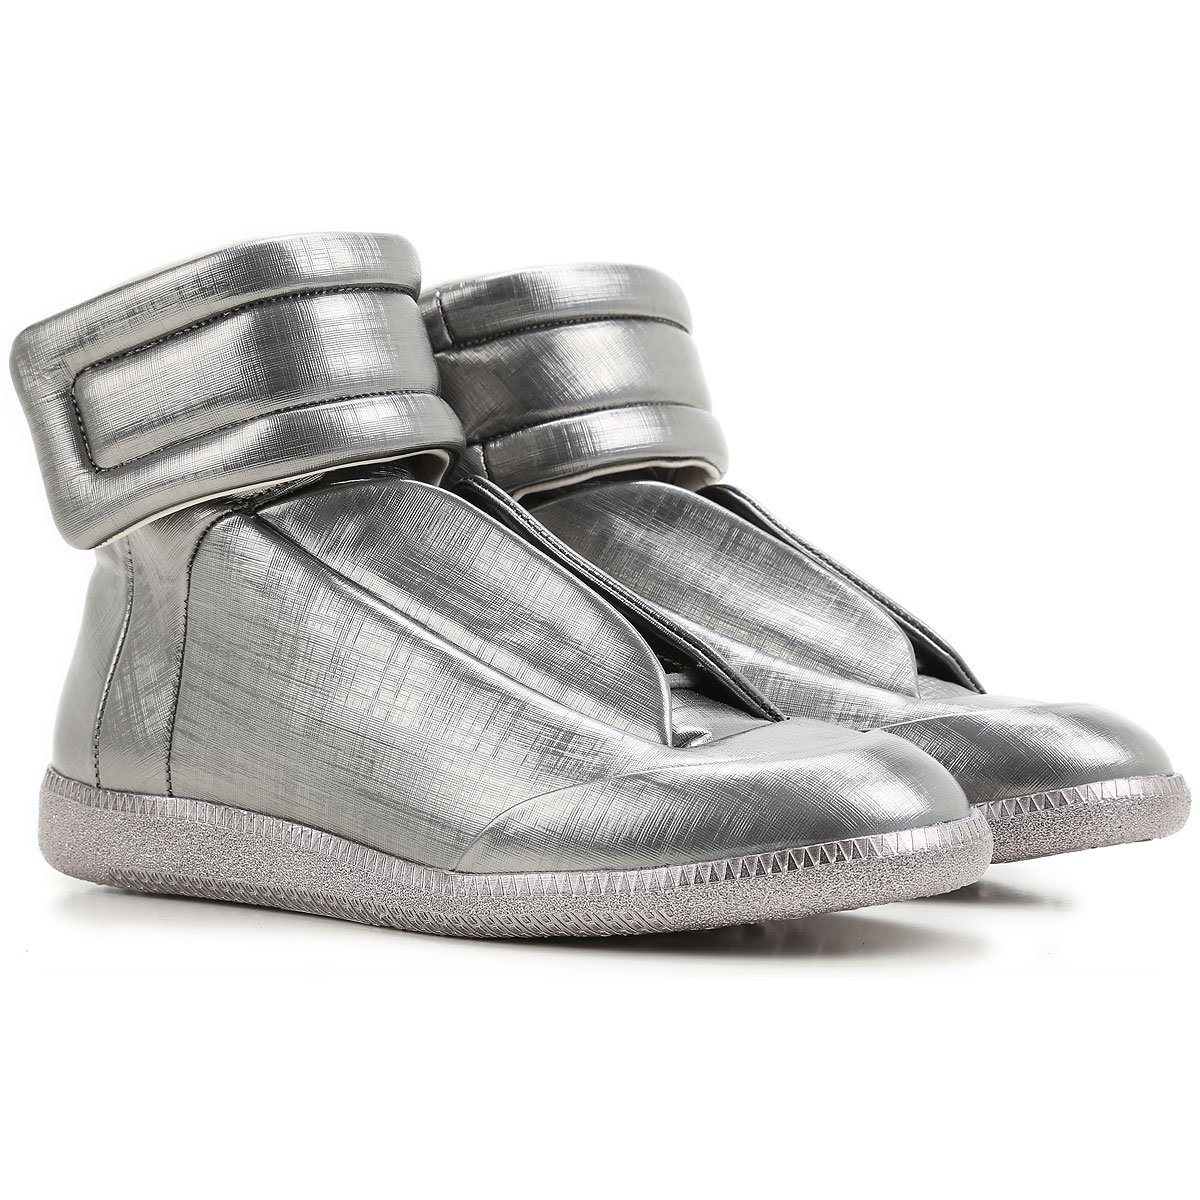 Mens Shoes Maison Martin Margiela, Style code: s57ws0114